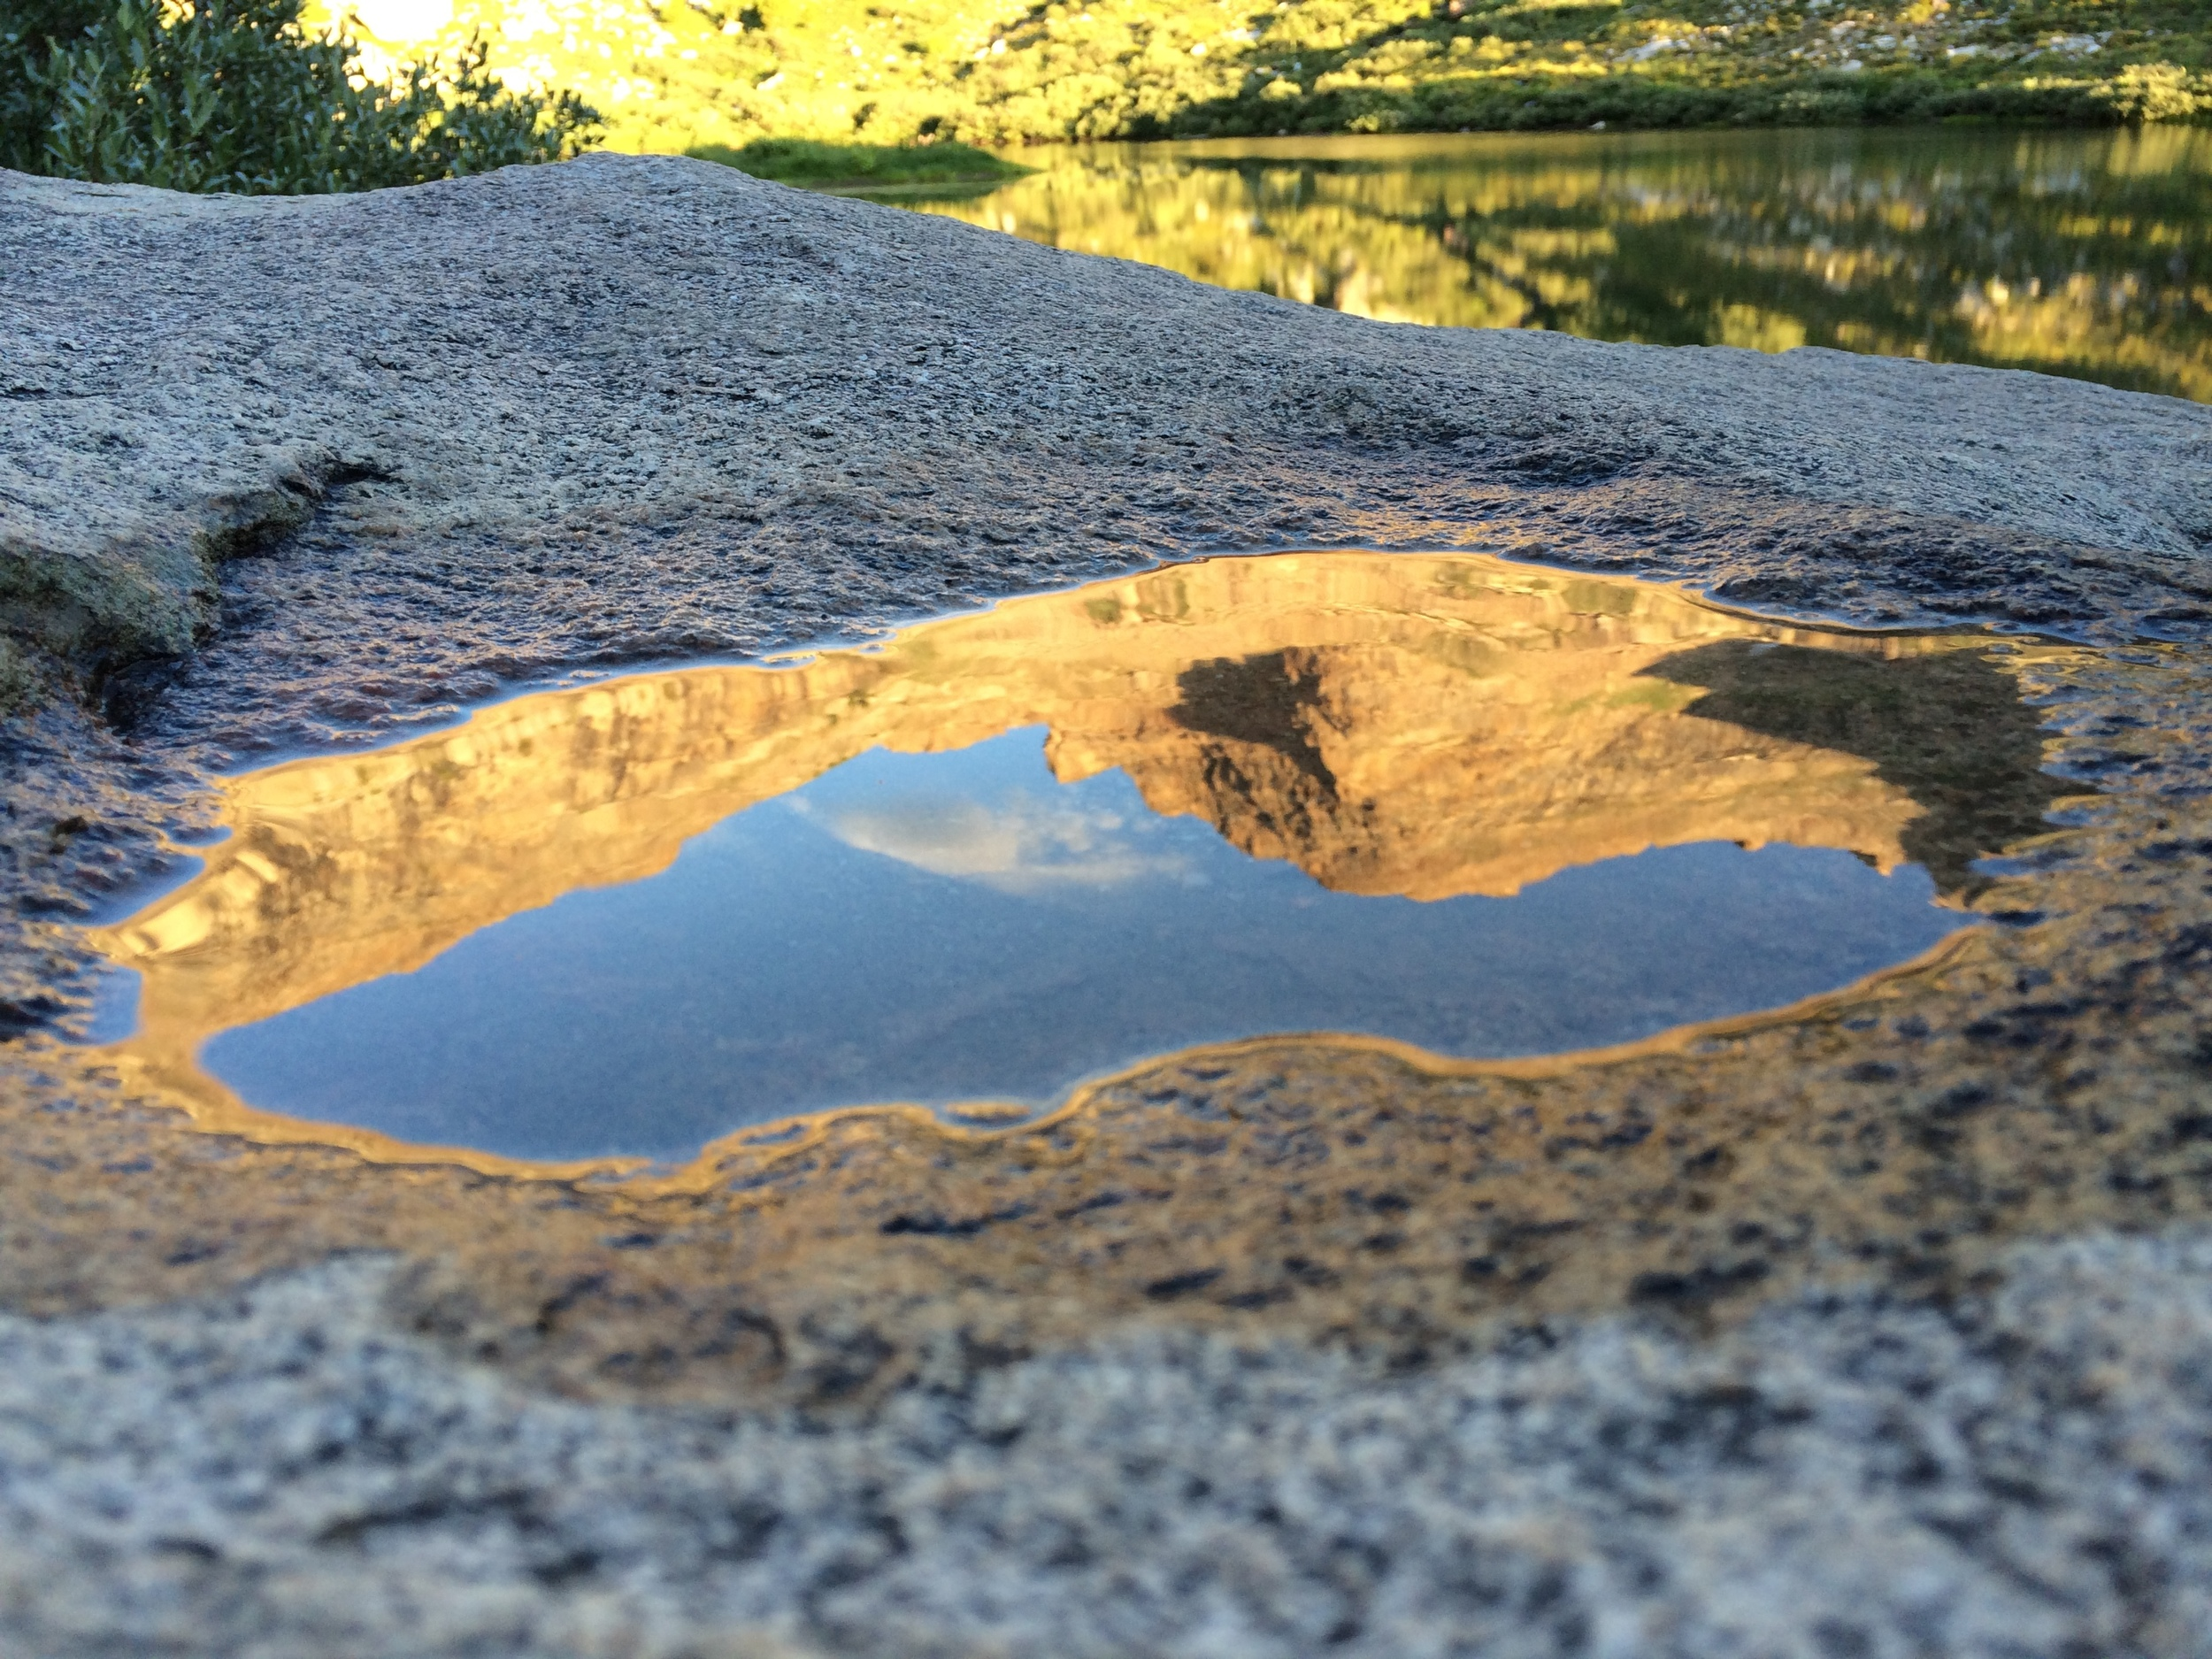 Puddlegram in a boulder near Island Lake, with a reflection of the pass to Thomas Canyon